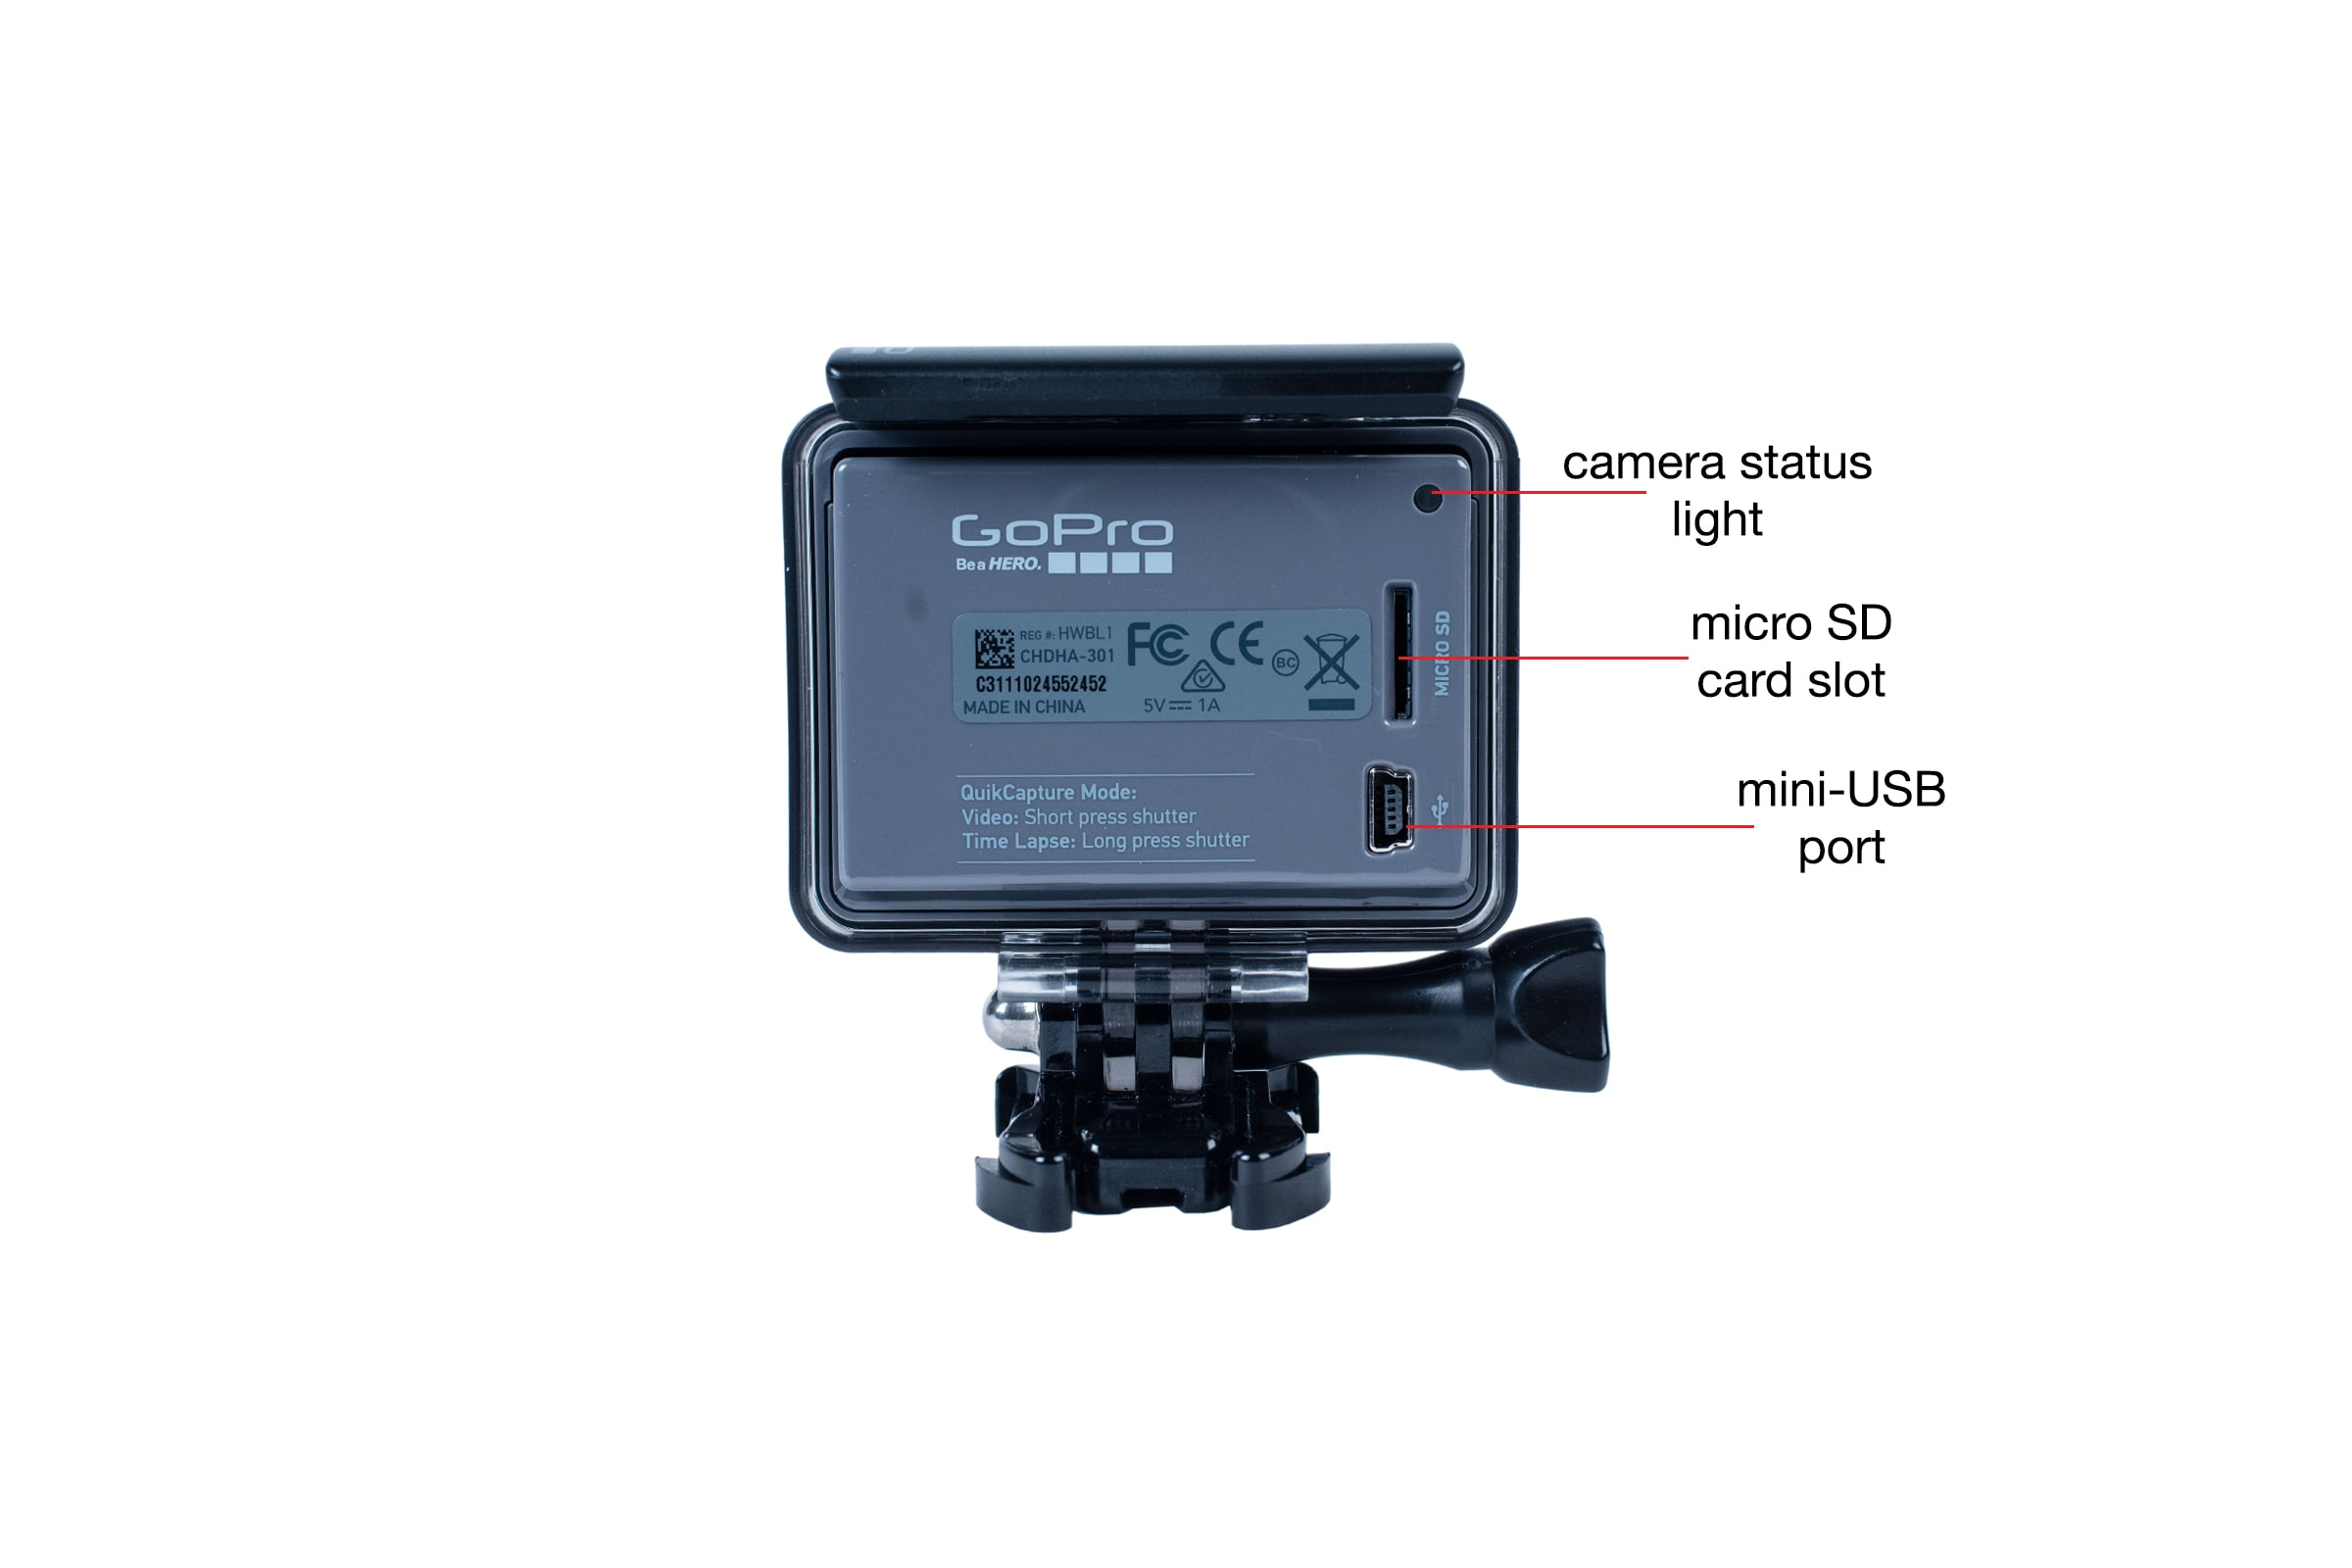 Rear view of the GoPro Hero (2014)